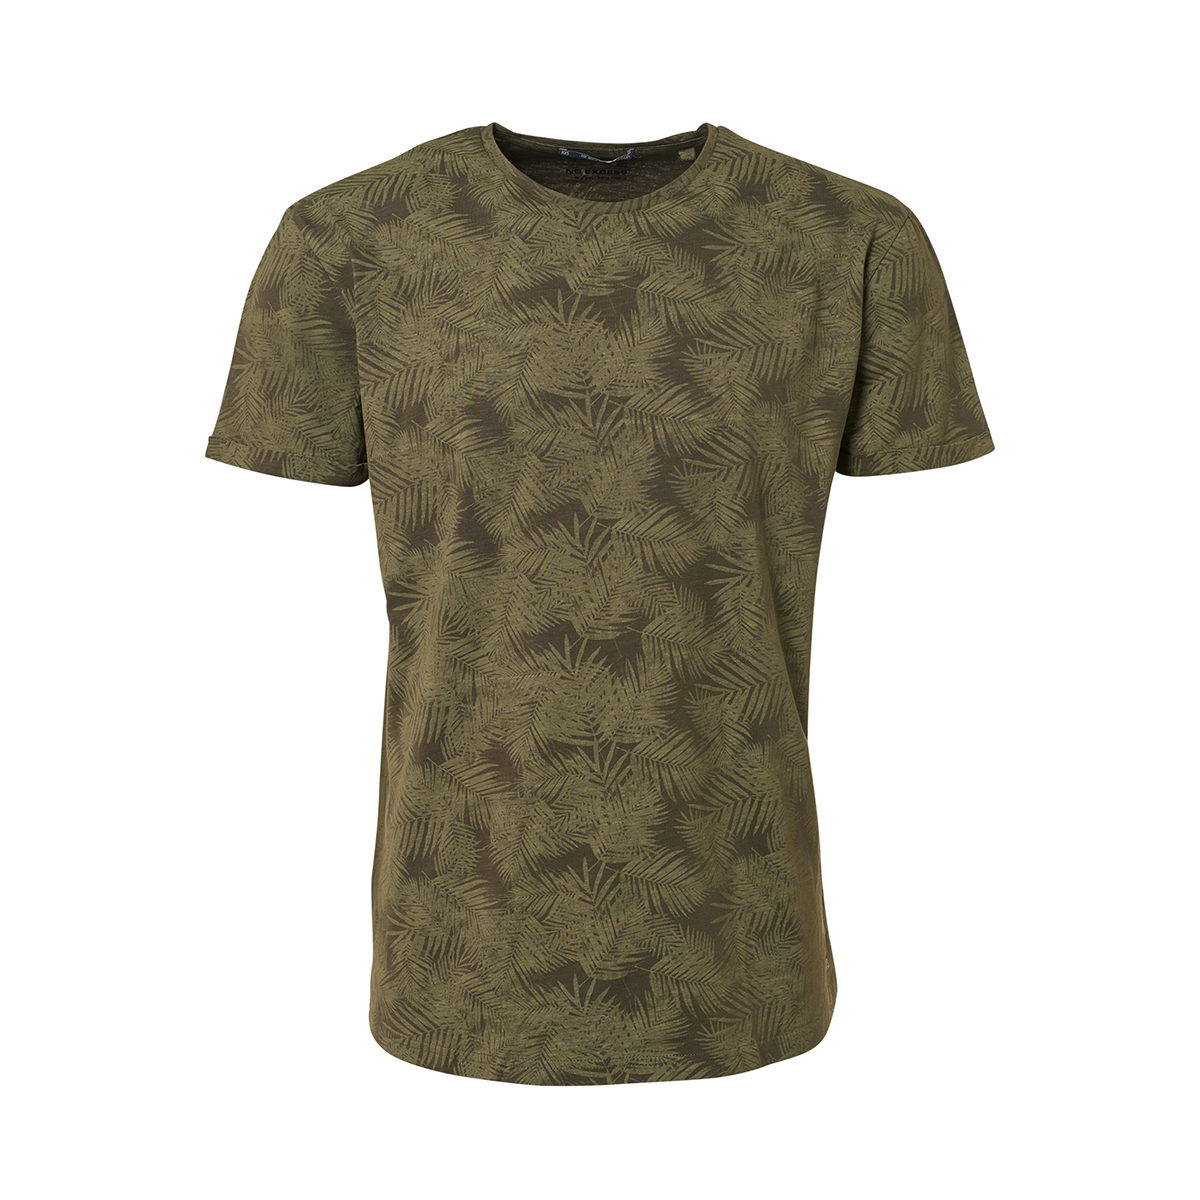 t shirt printed 91340401 no-excess t-shirt 055 olive